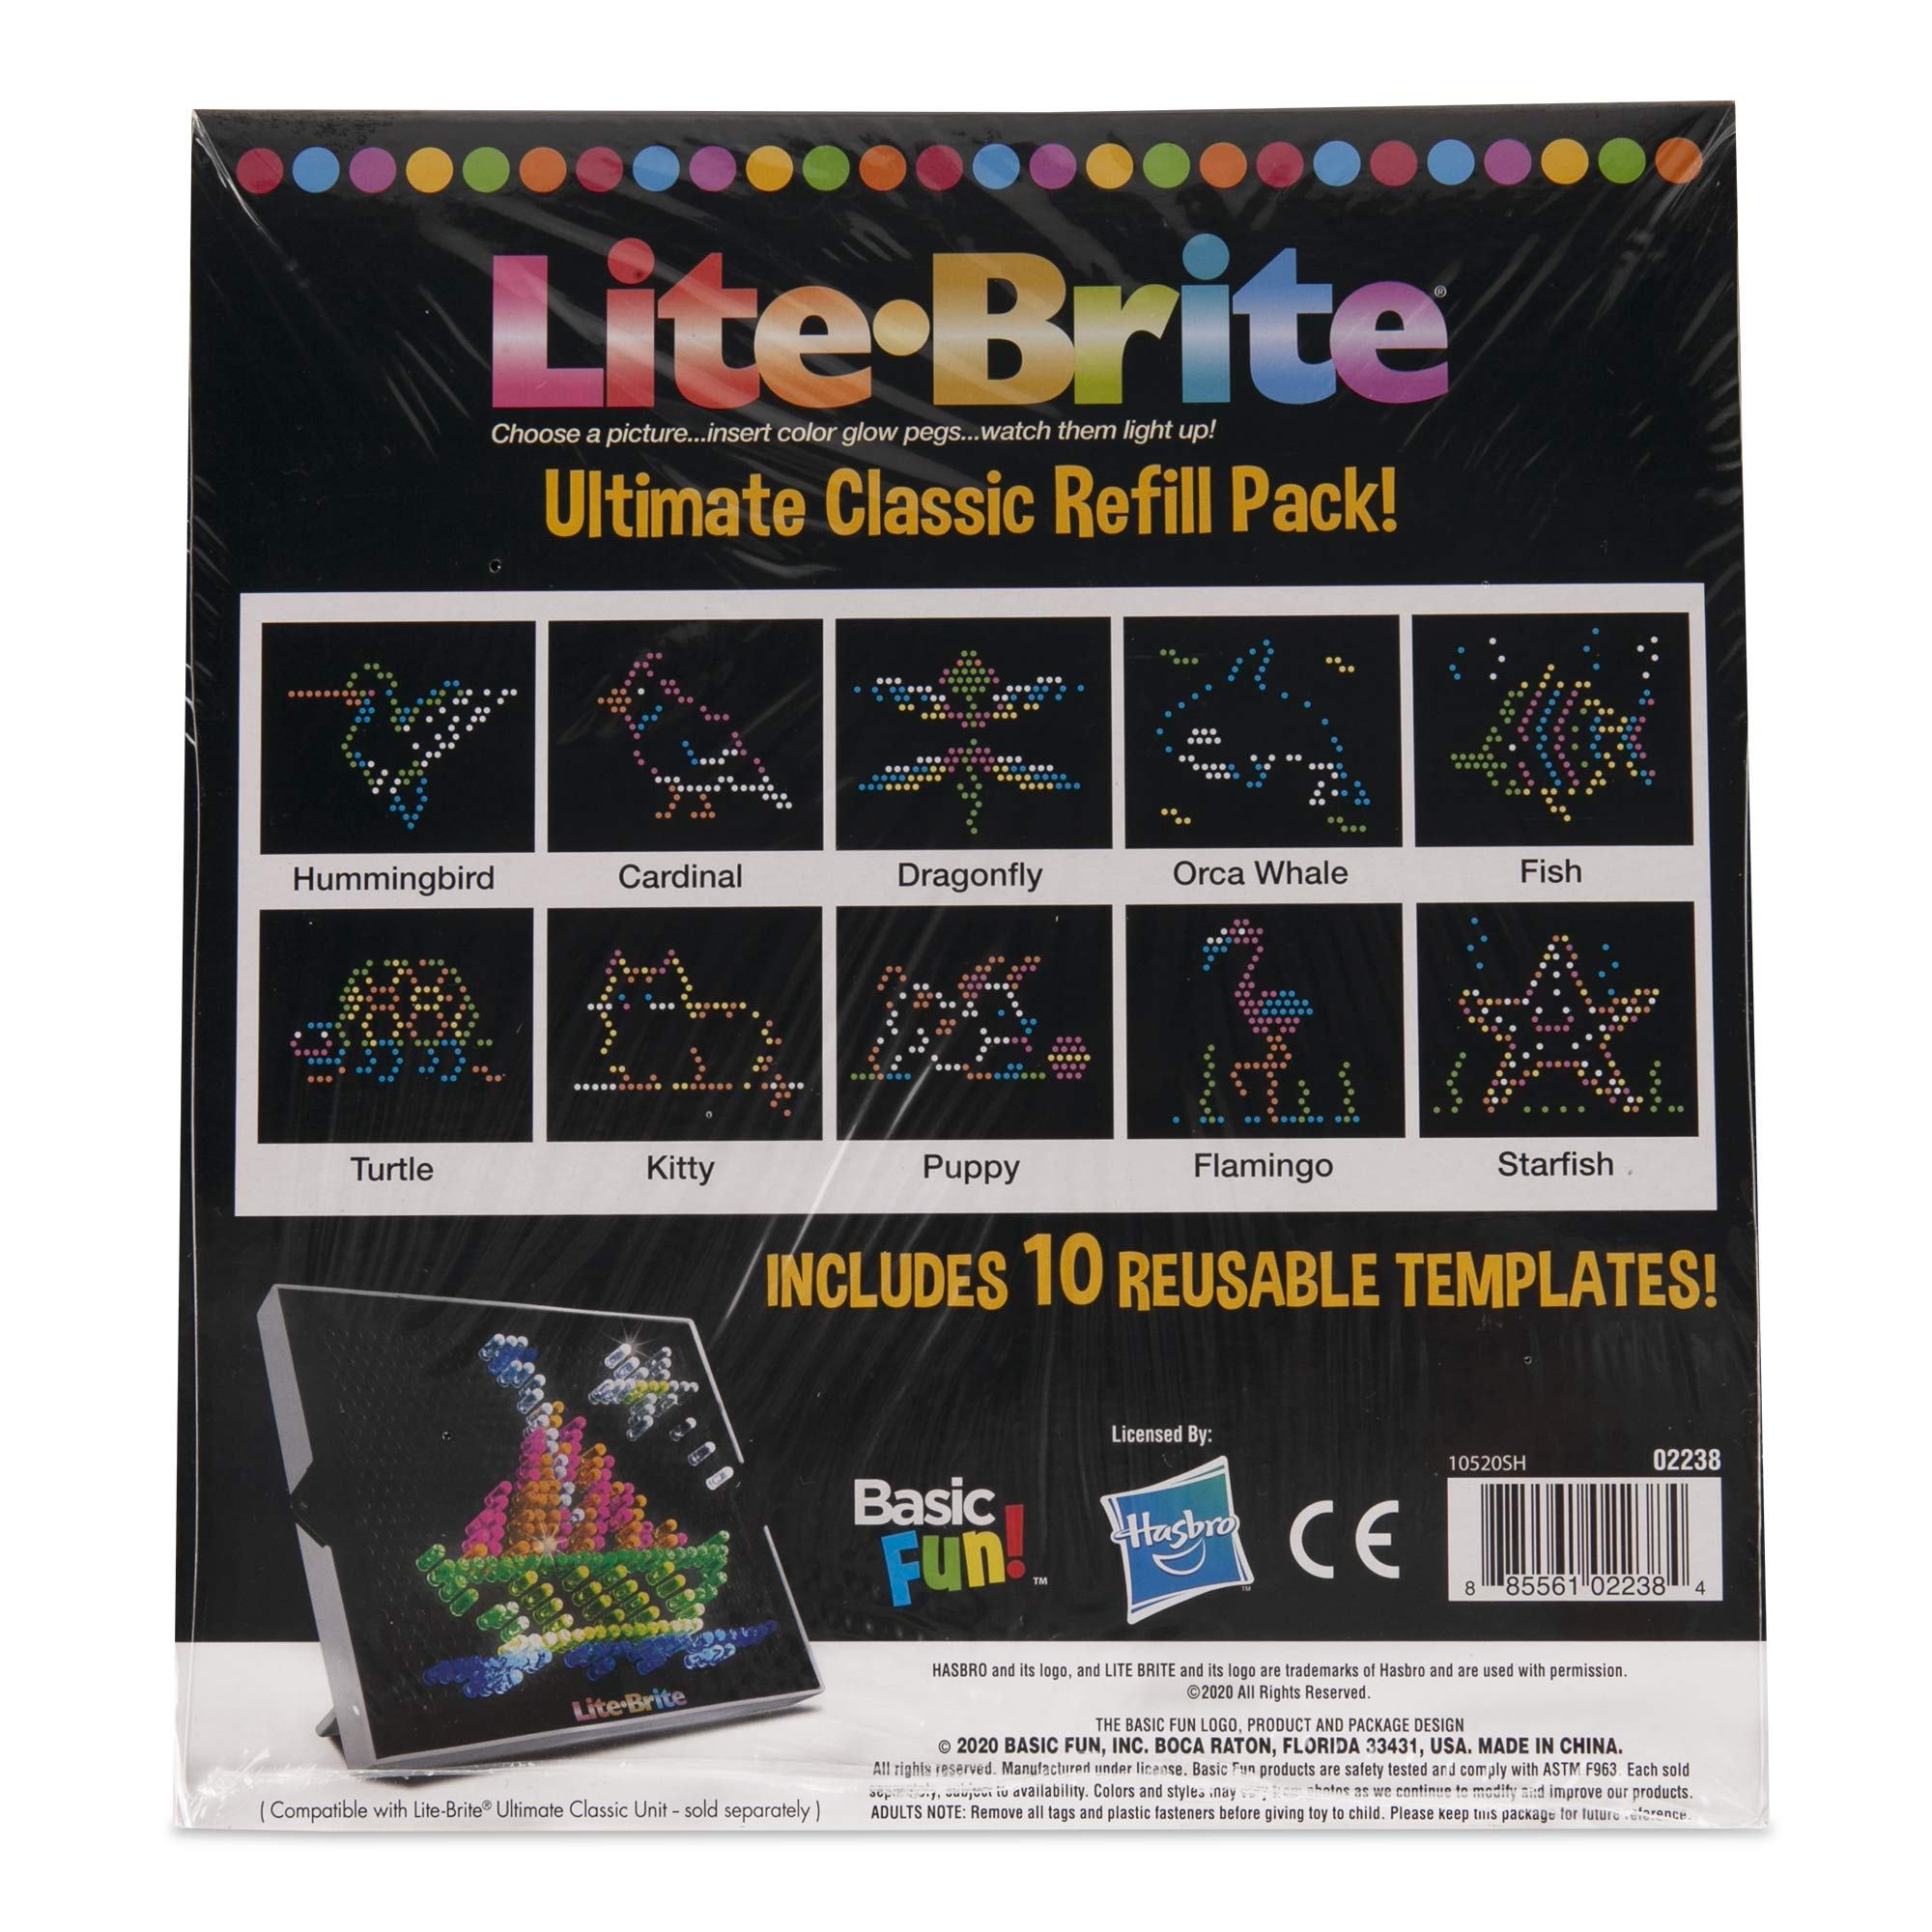 Basic Fun Lite Brite Ultimate Classic Refill Pack - Animal Theme - 10 Reusable Templates - Amazon Exclusive